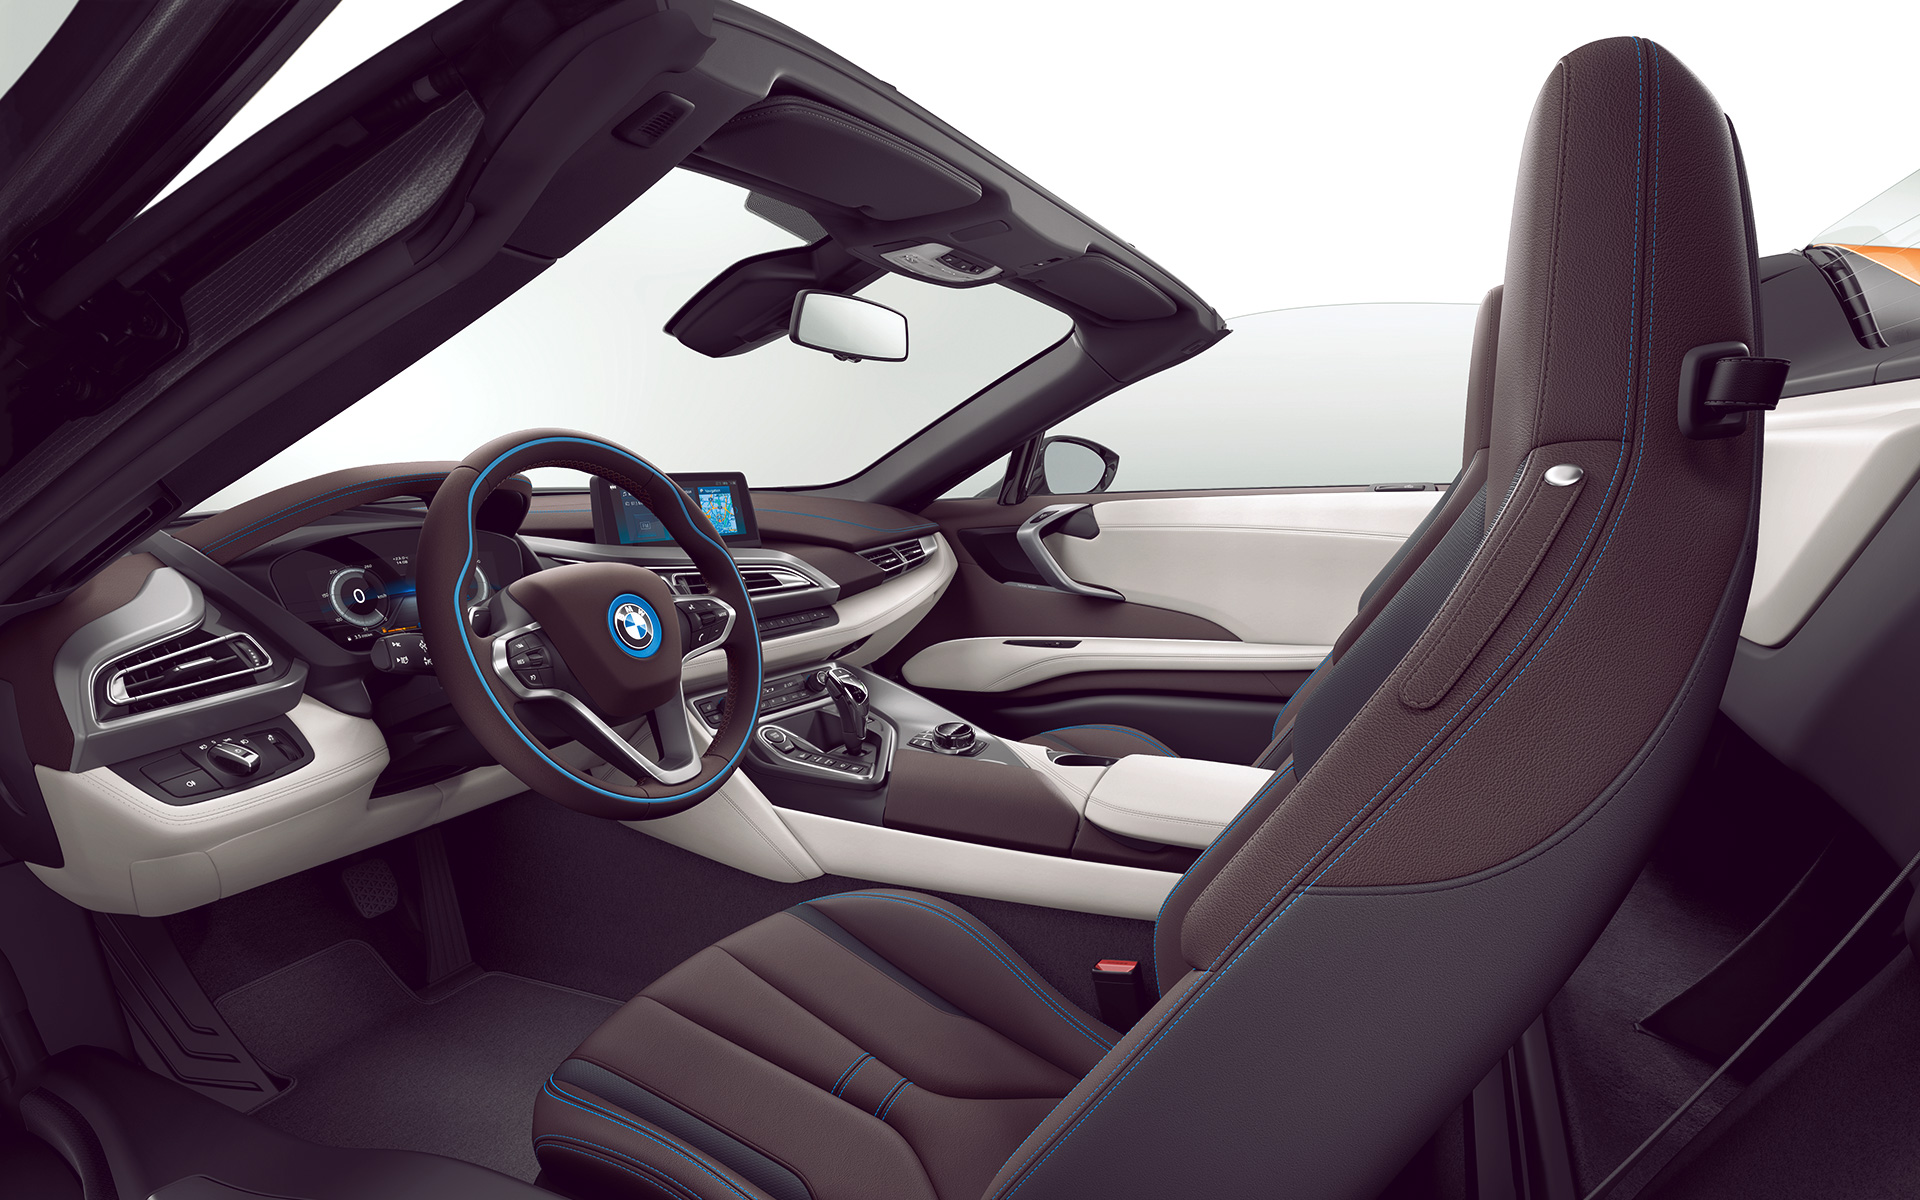 bmw i8 i8roadster home gallery lines 04 dalbergia brown